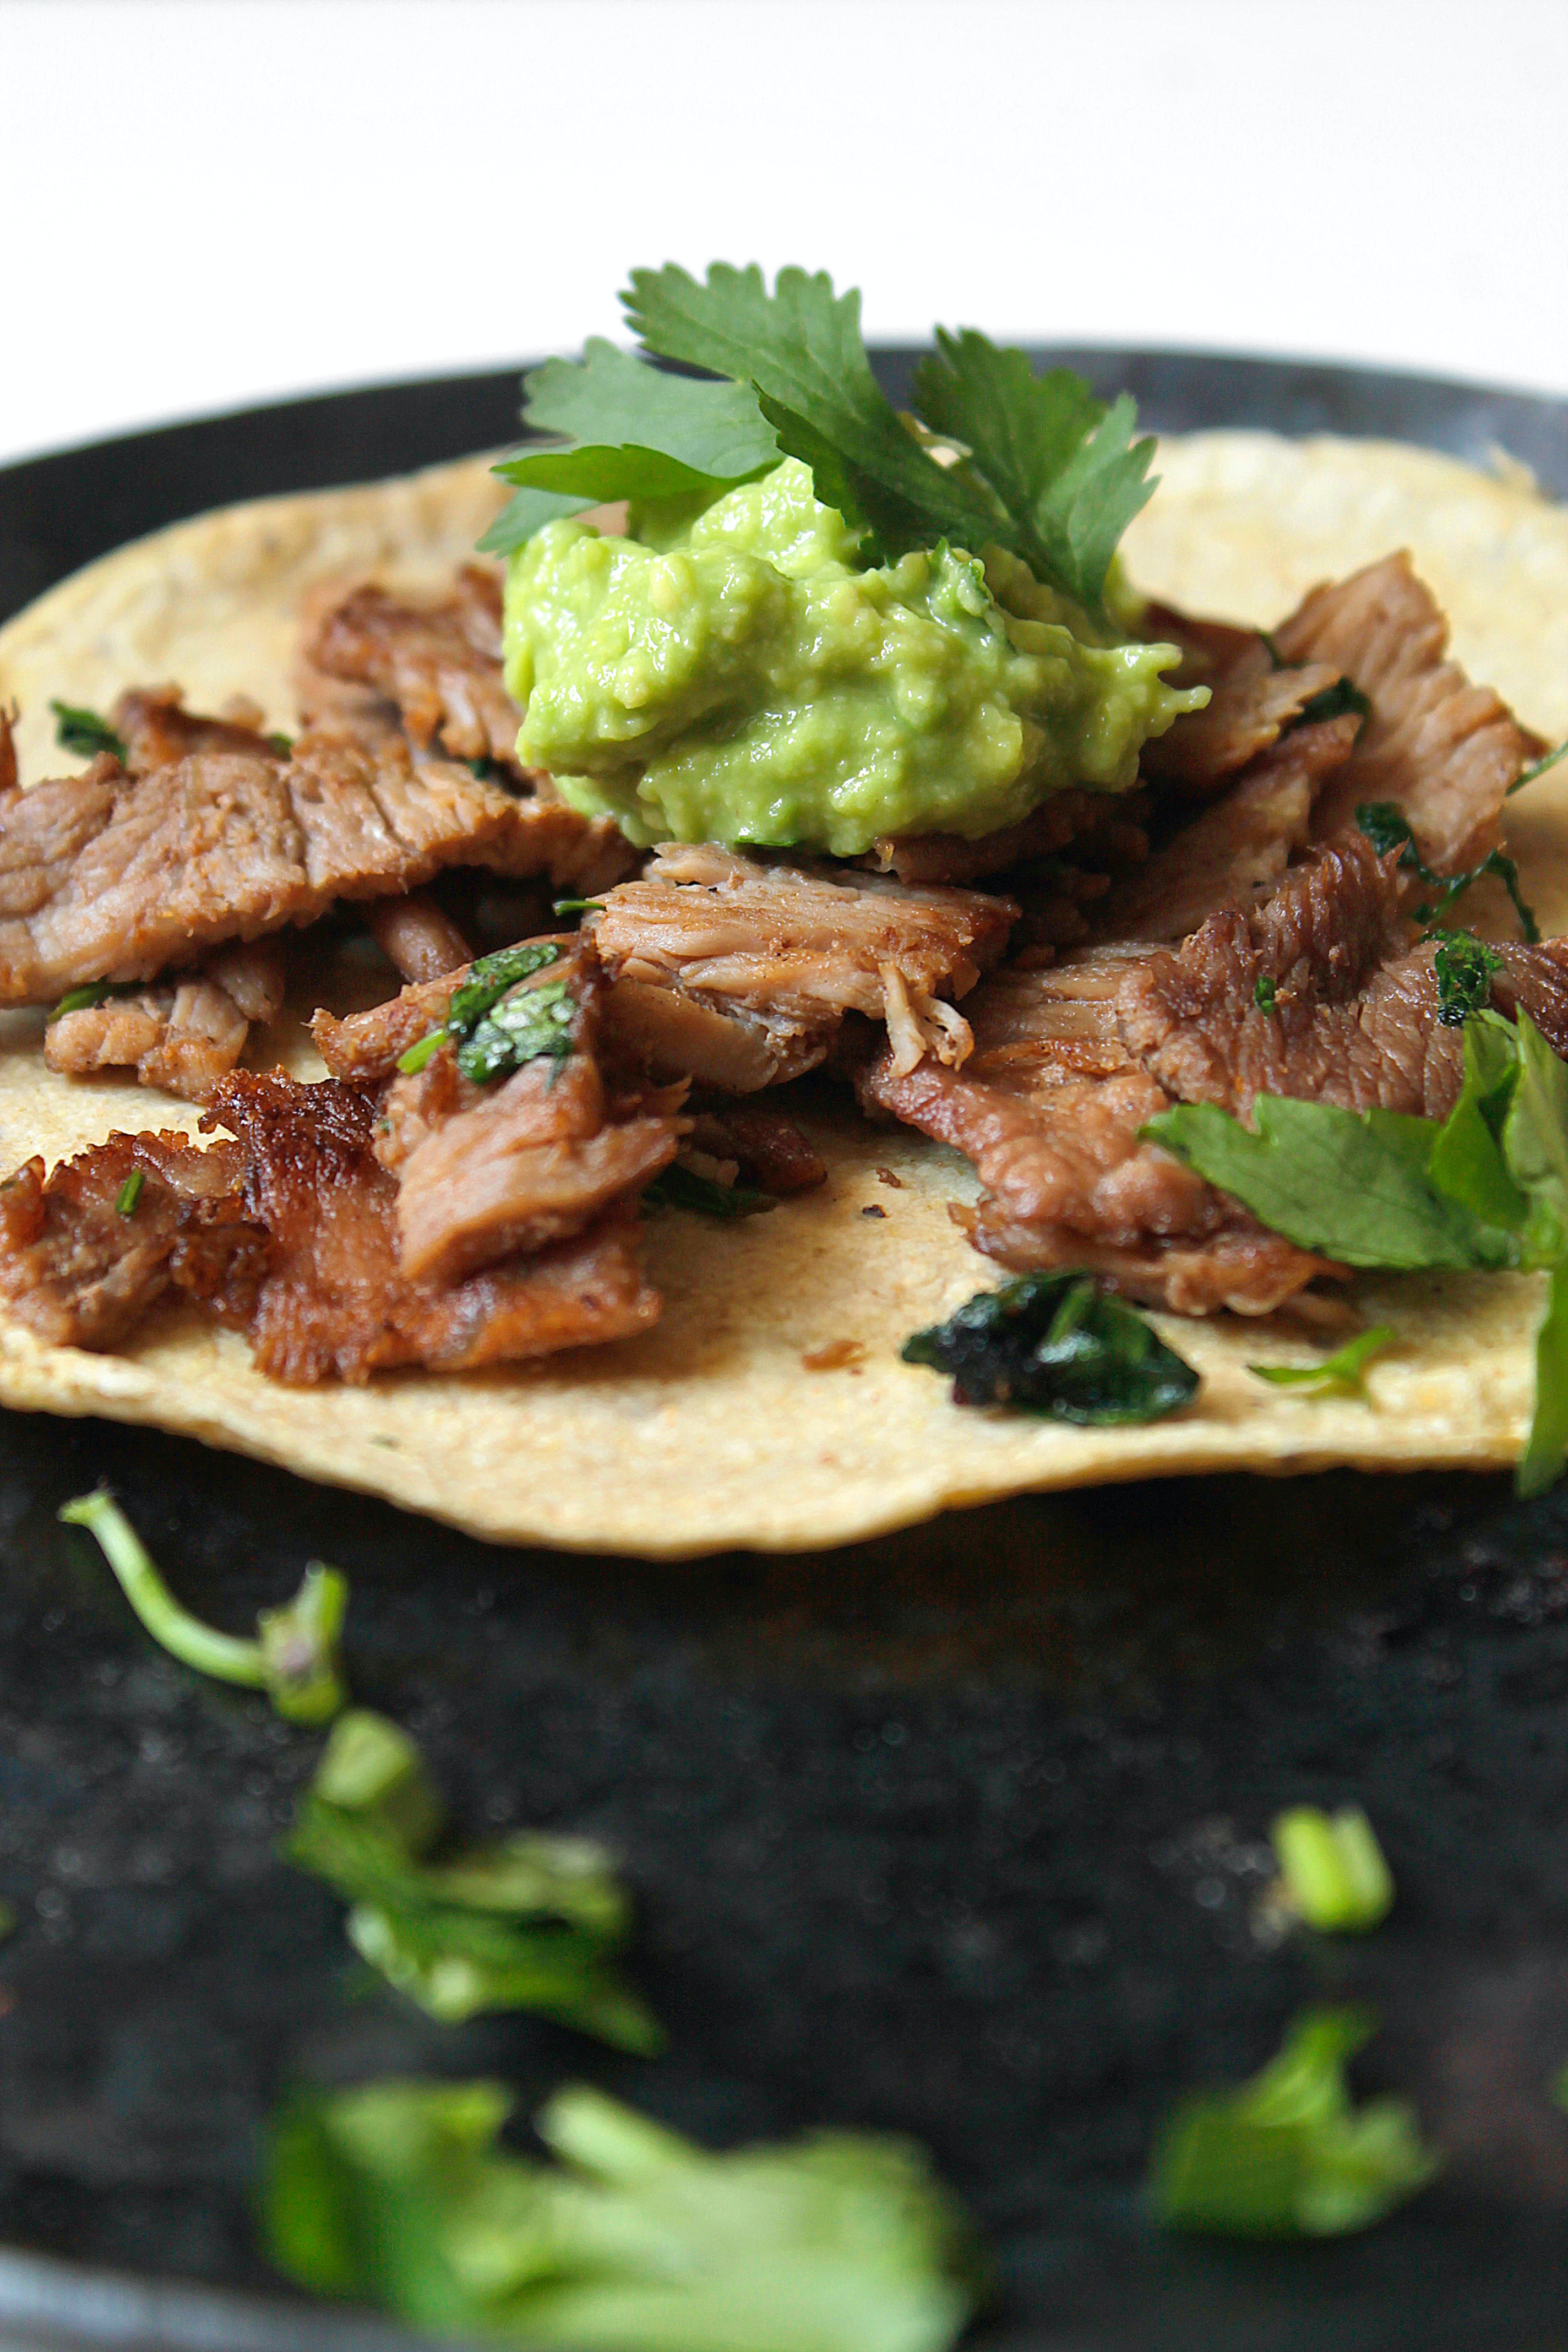 Organic Beef Steak Fajitas